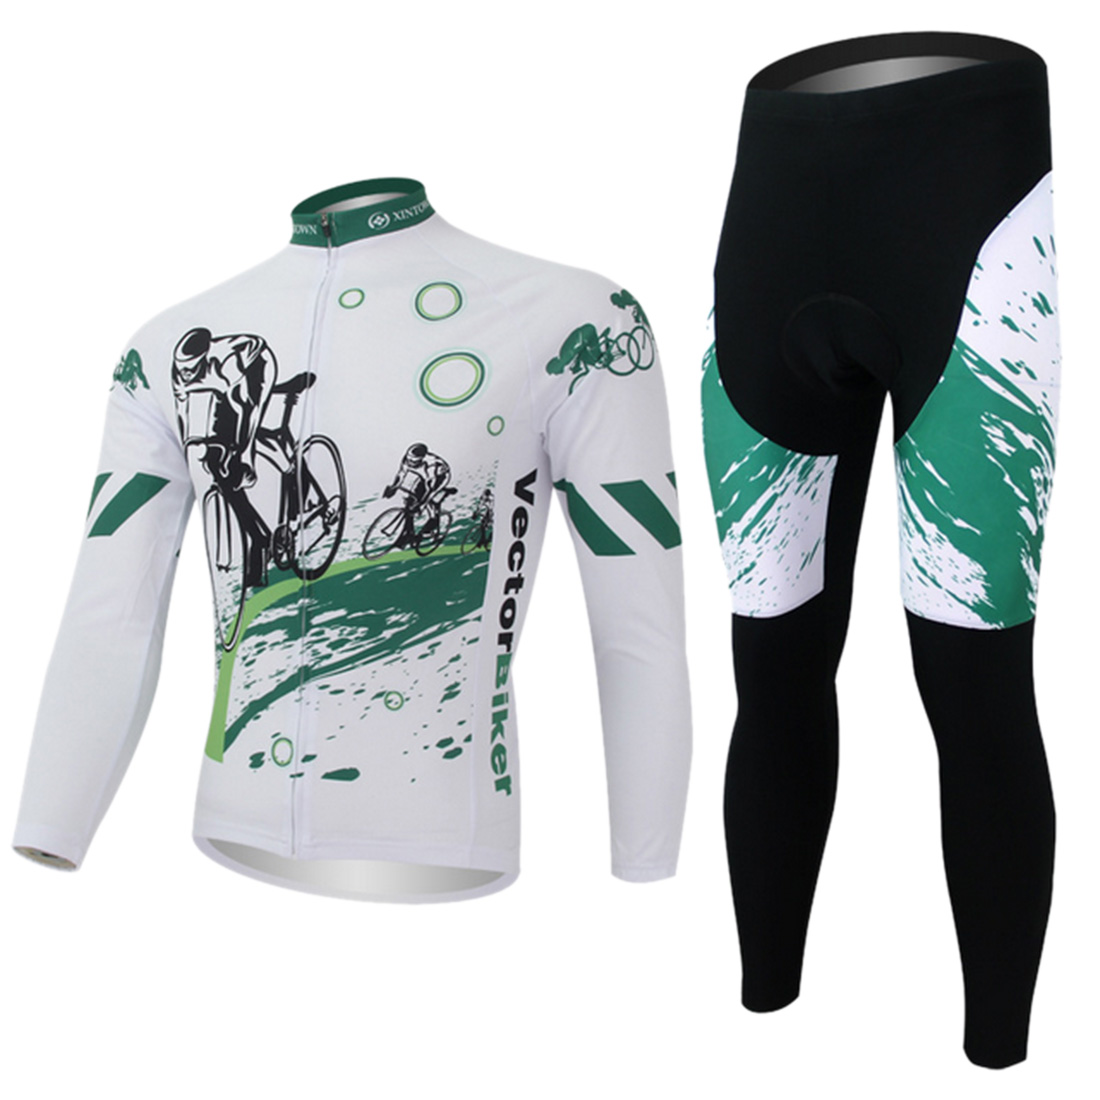 XINTOWN Unisex GEL Breathable Padded Green Cool Cycling Jersey Bicycle Suits Long Jersey Tight Tops & Shorts Men MTB Bike  alexander terekhov платья